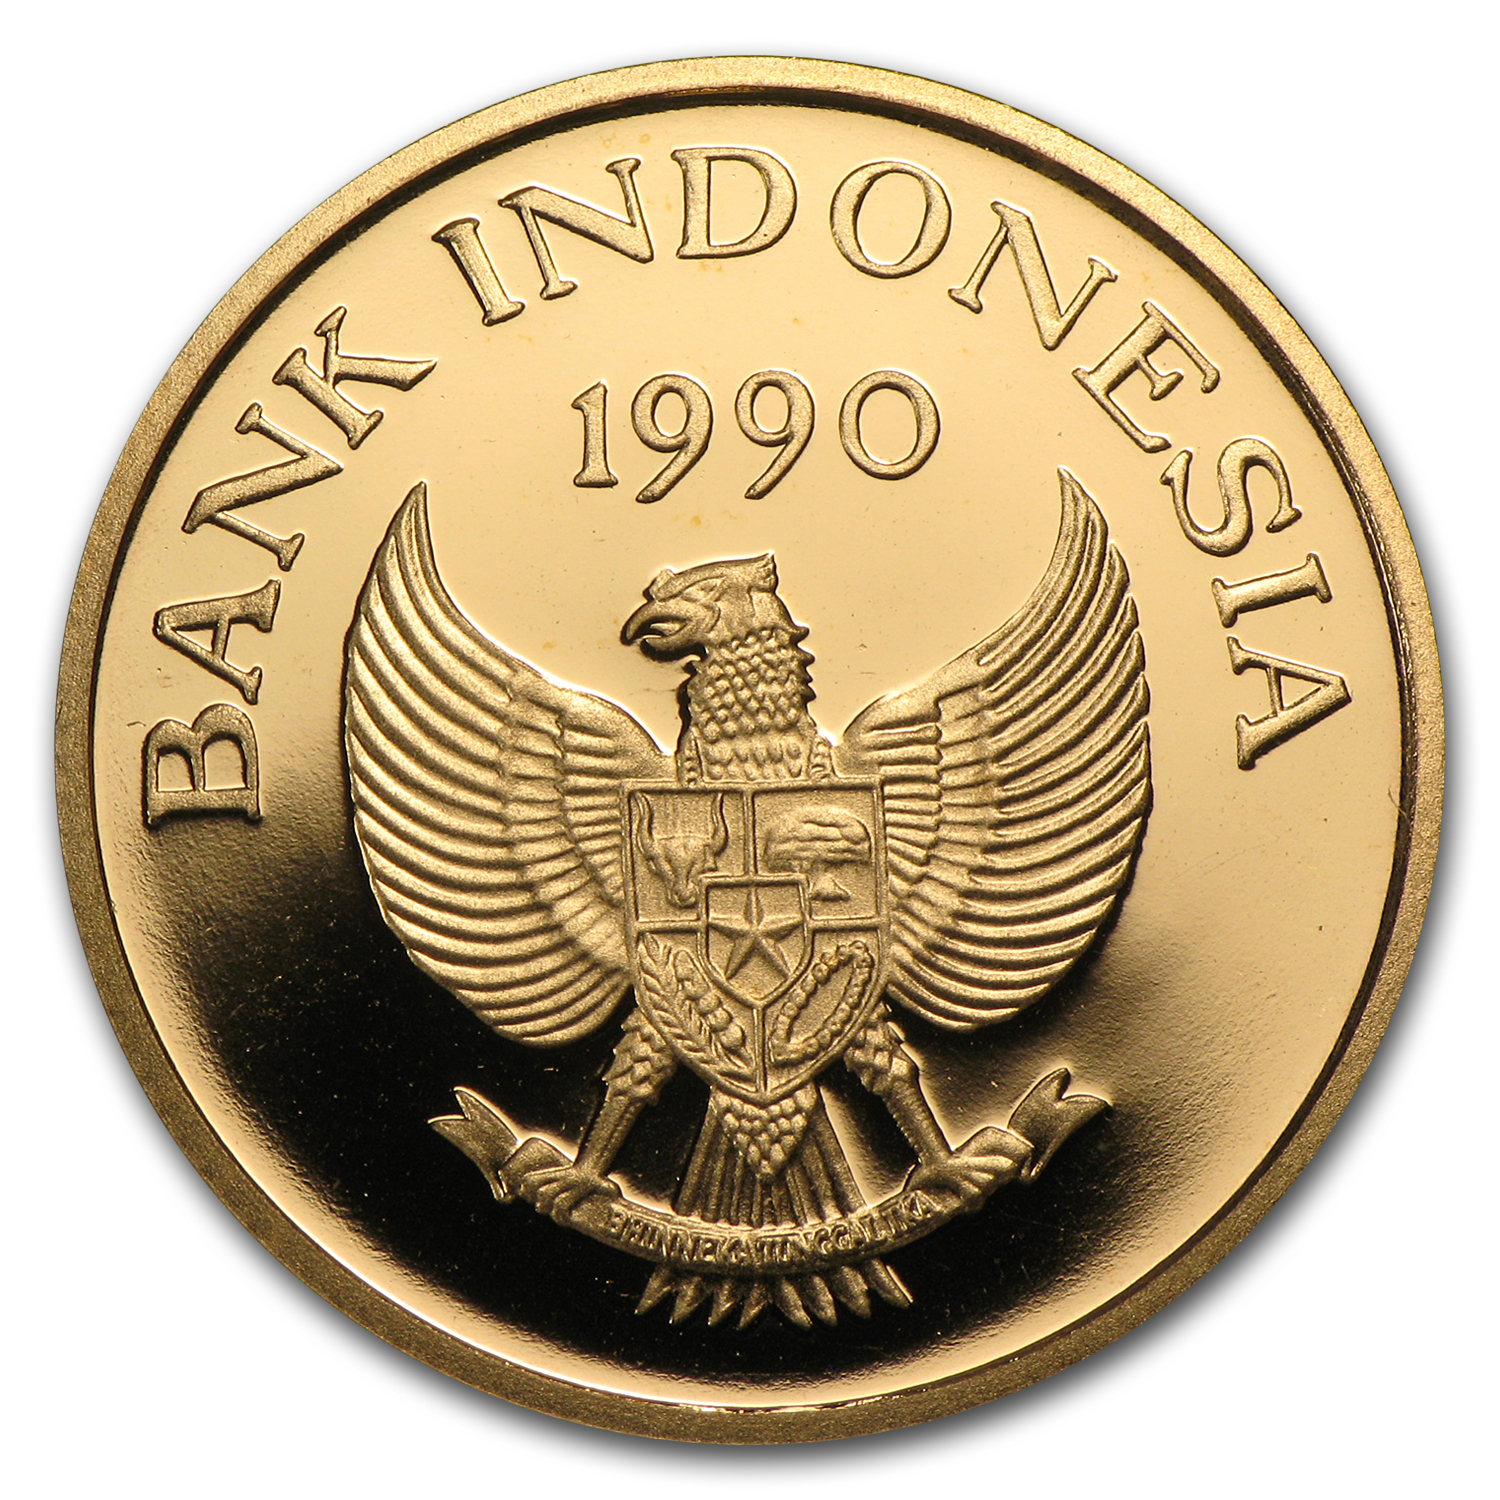 Indonesia 1990 Gold 200000 Rupiah Proof Save the Children